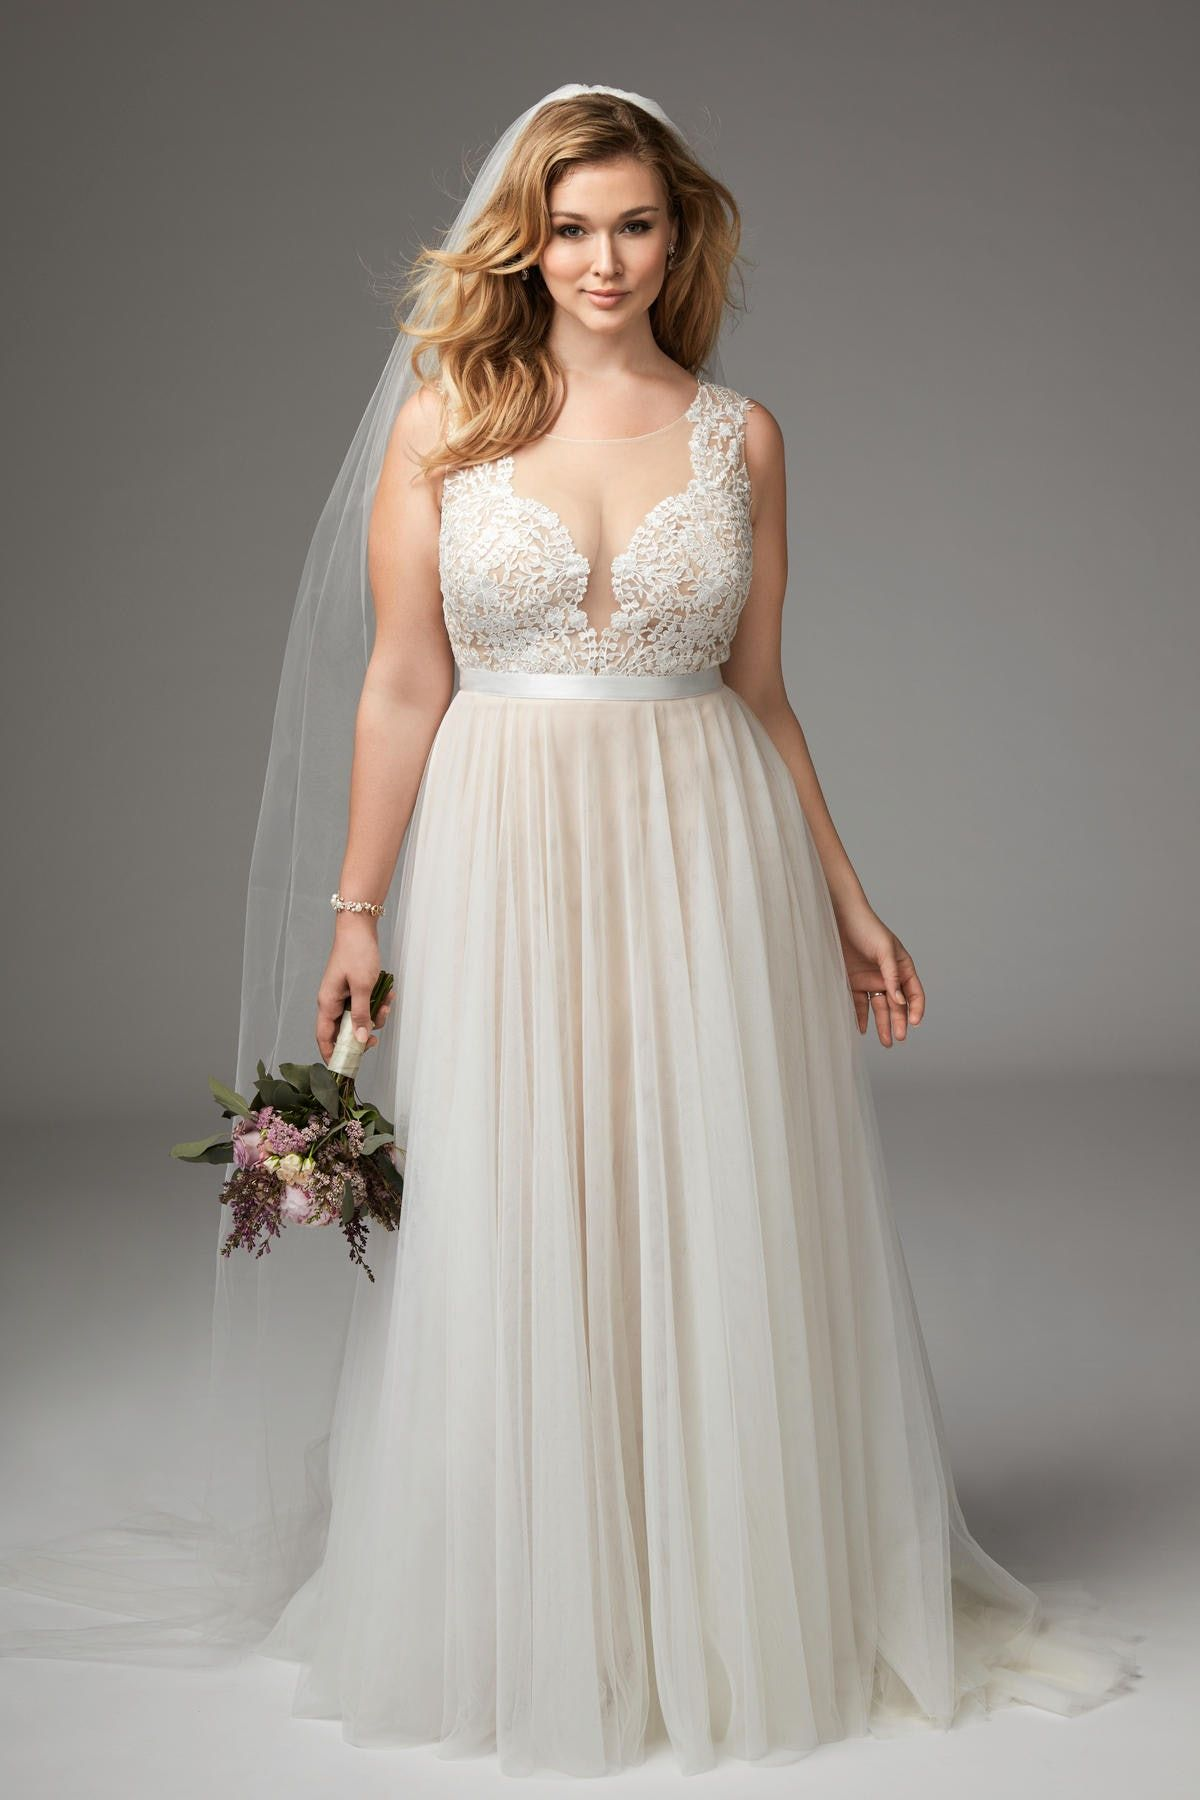 11 Plus Size Wedding Dresses That Are All Unique Absolutely Gorgeous Wedding Dresses Plus Size Plus Size Wedding Gowns Summer Wedding Dress